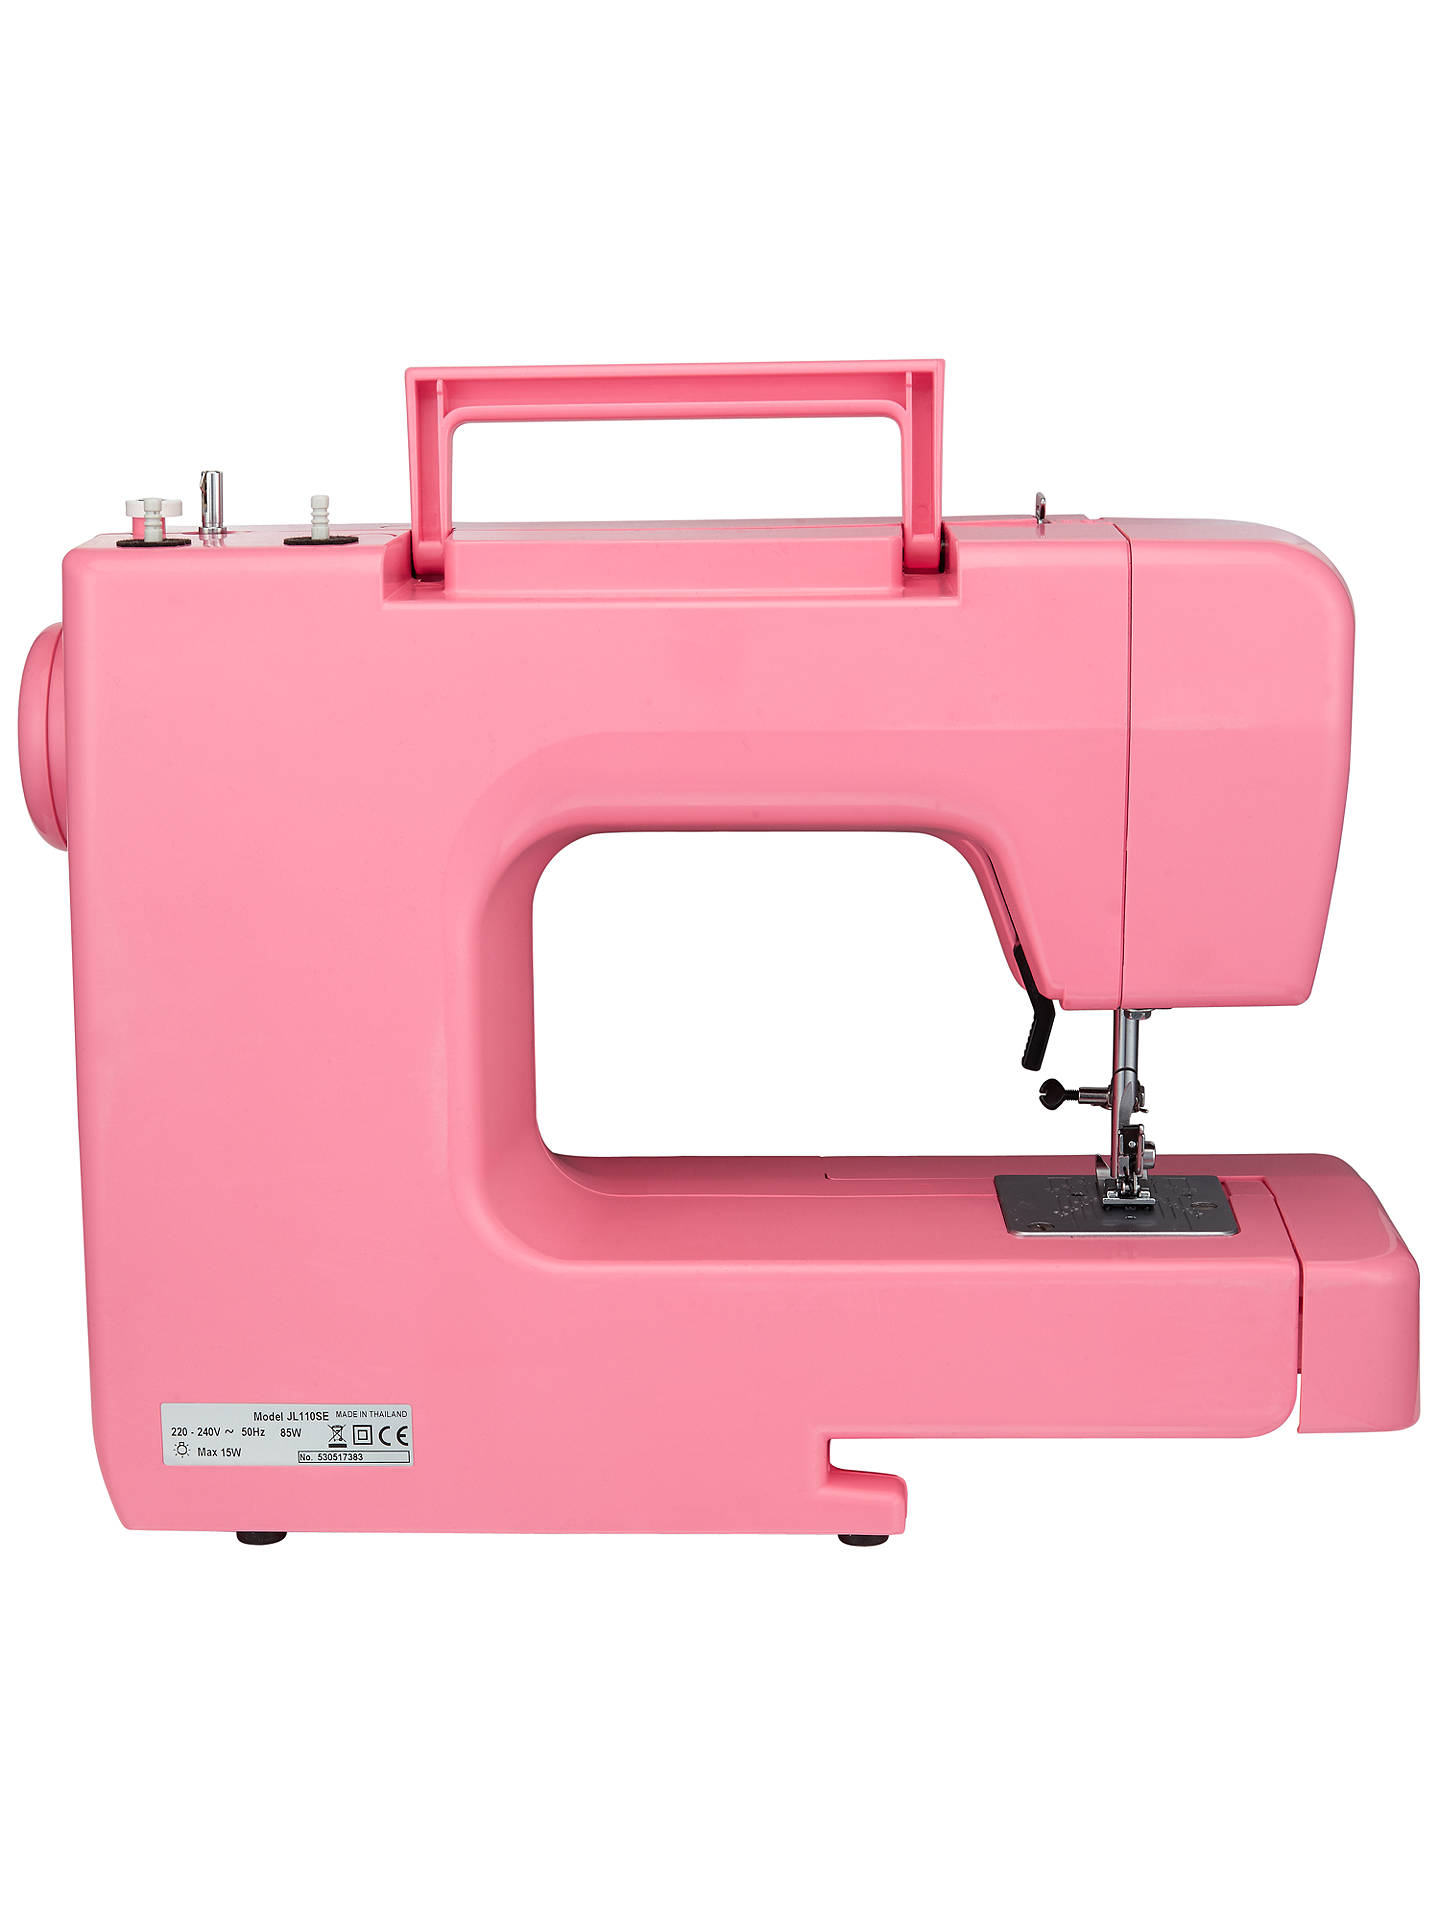 Buy John Lewis & Partners JL110 Sewing Machine, Pink Online at johnlewis.com